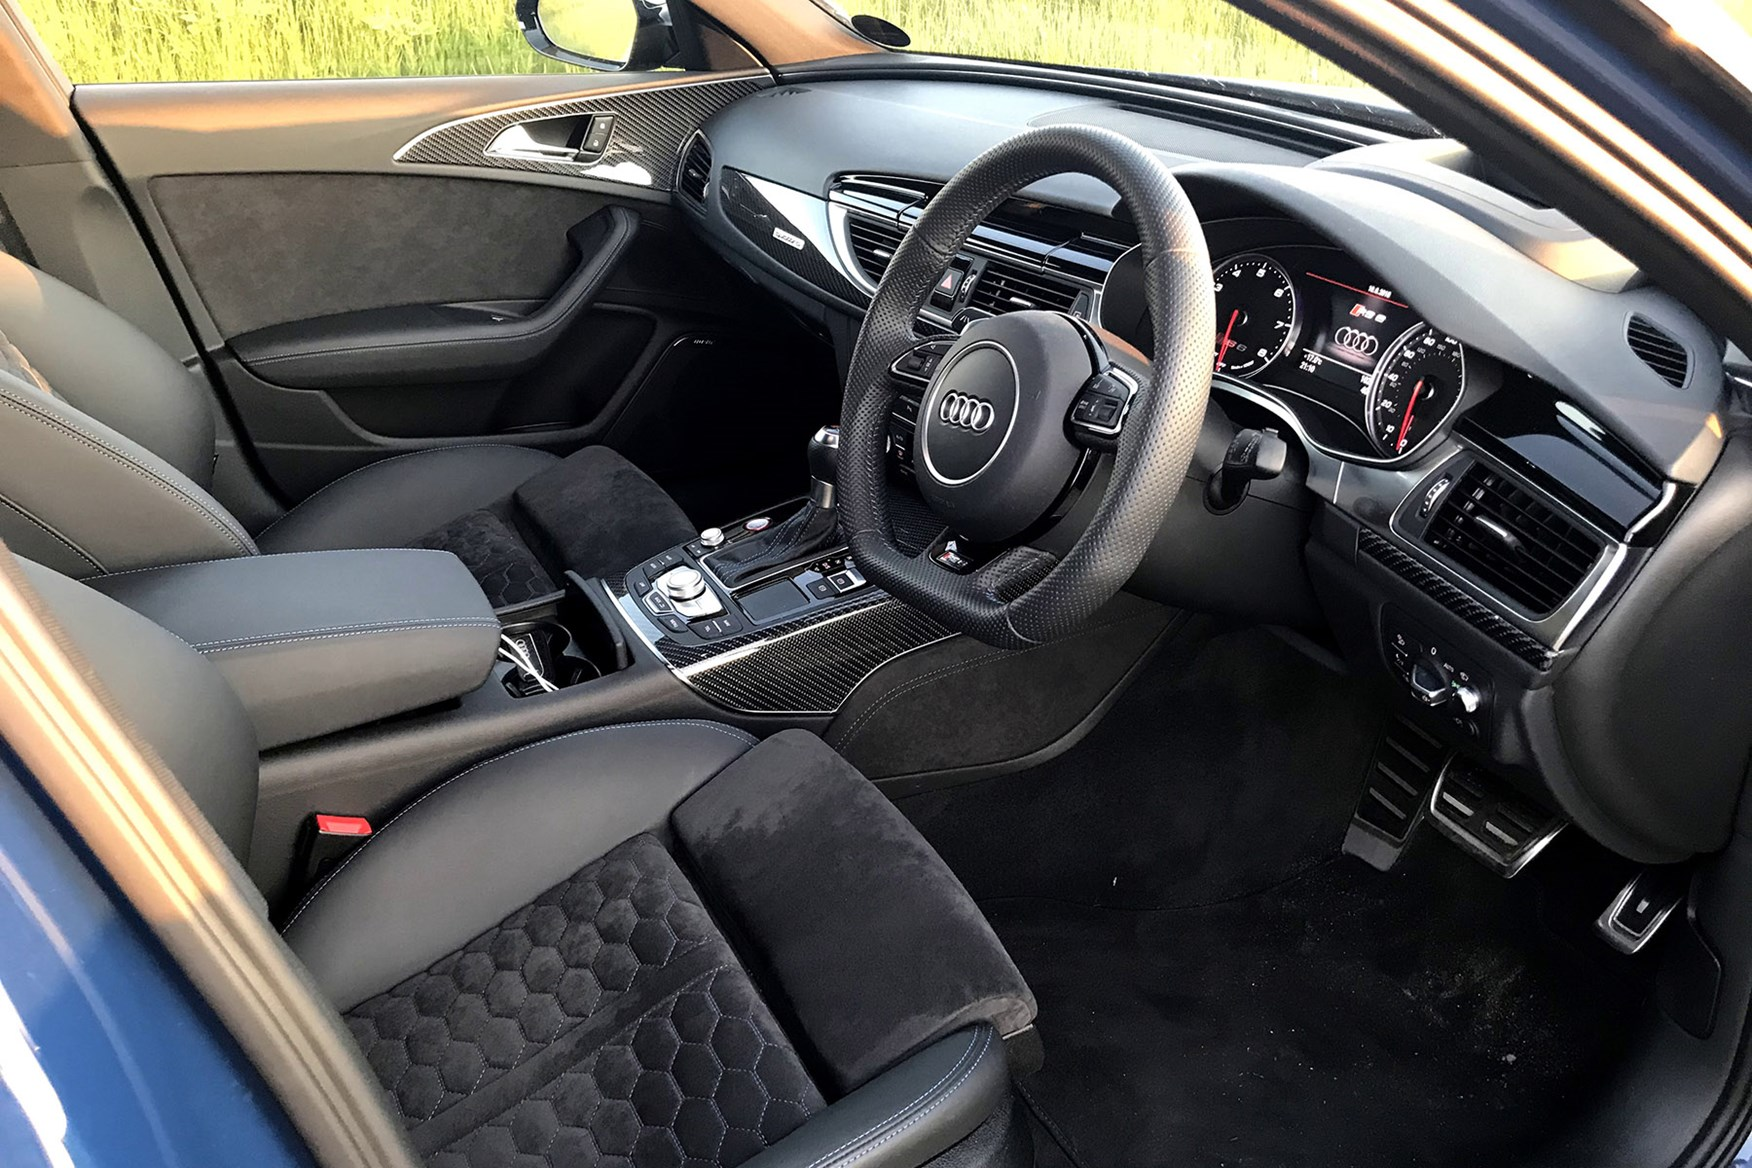 The Audi RS6 interior is a high quality place to spend time